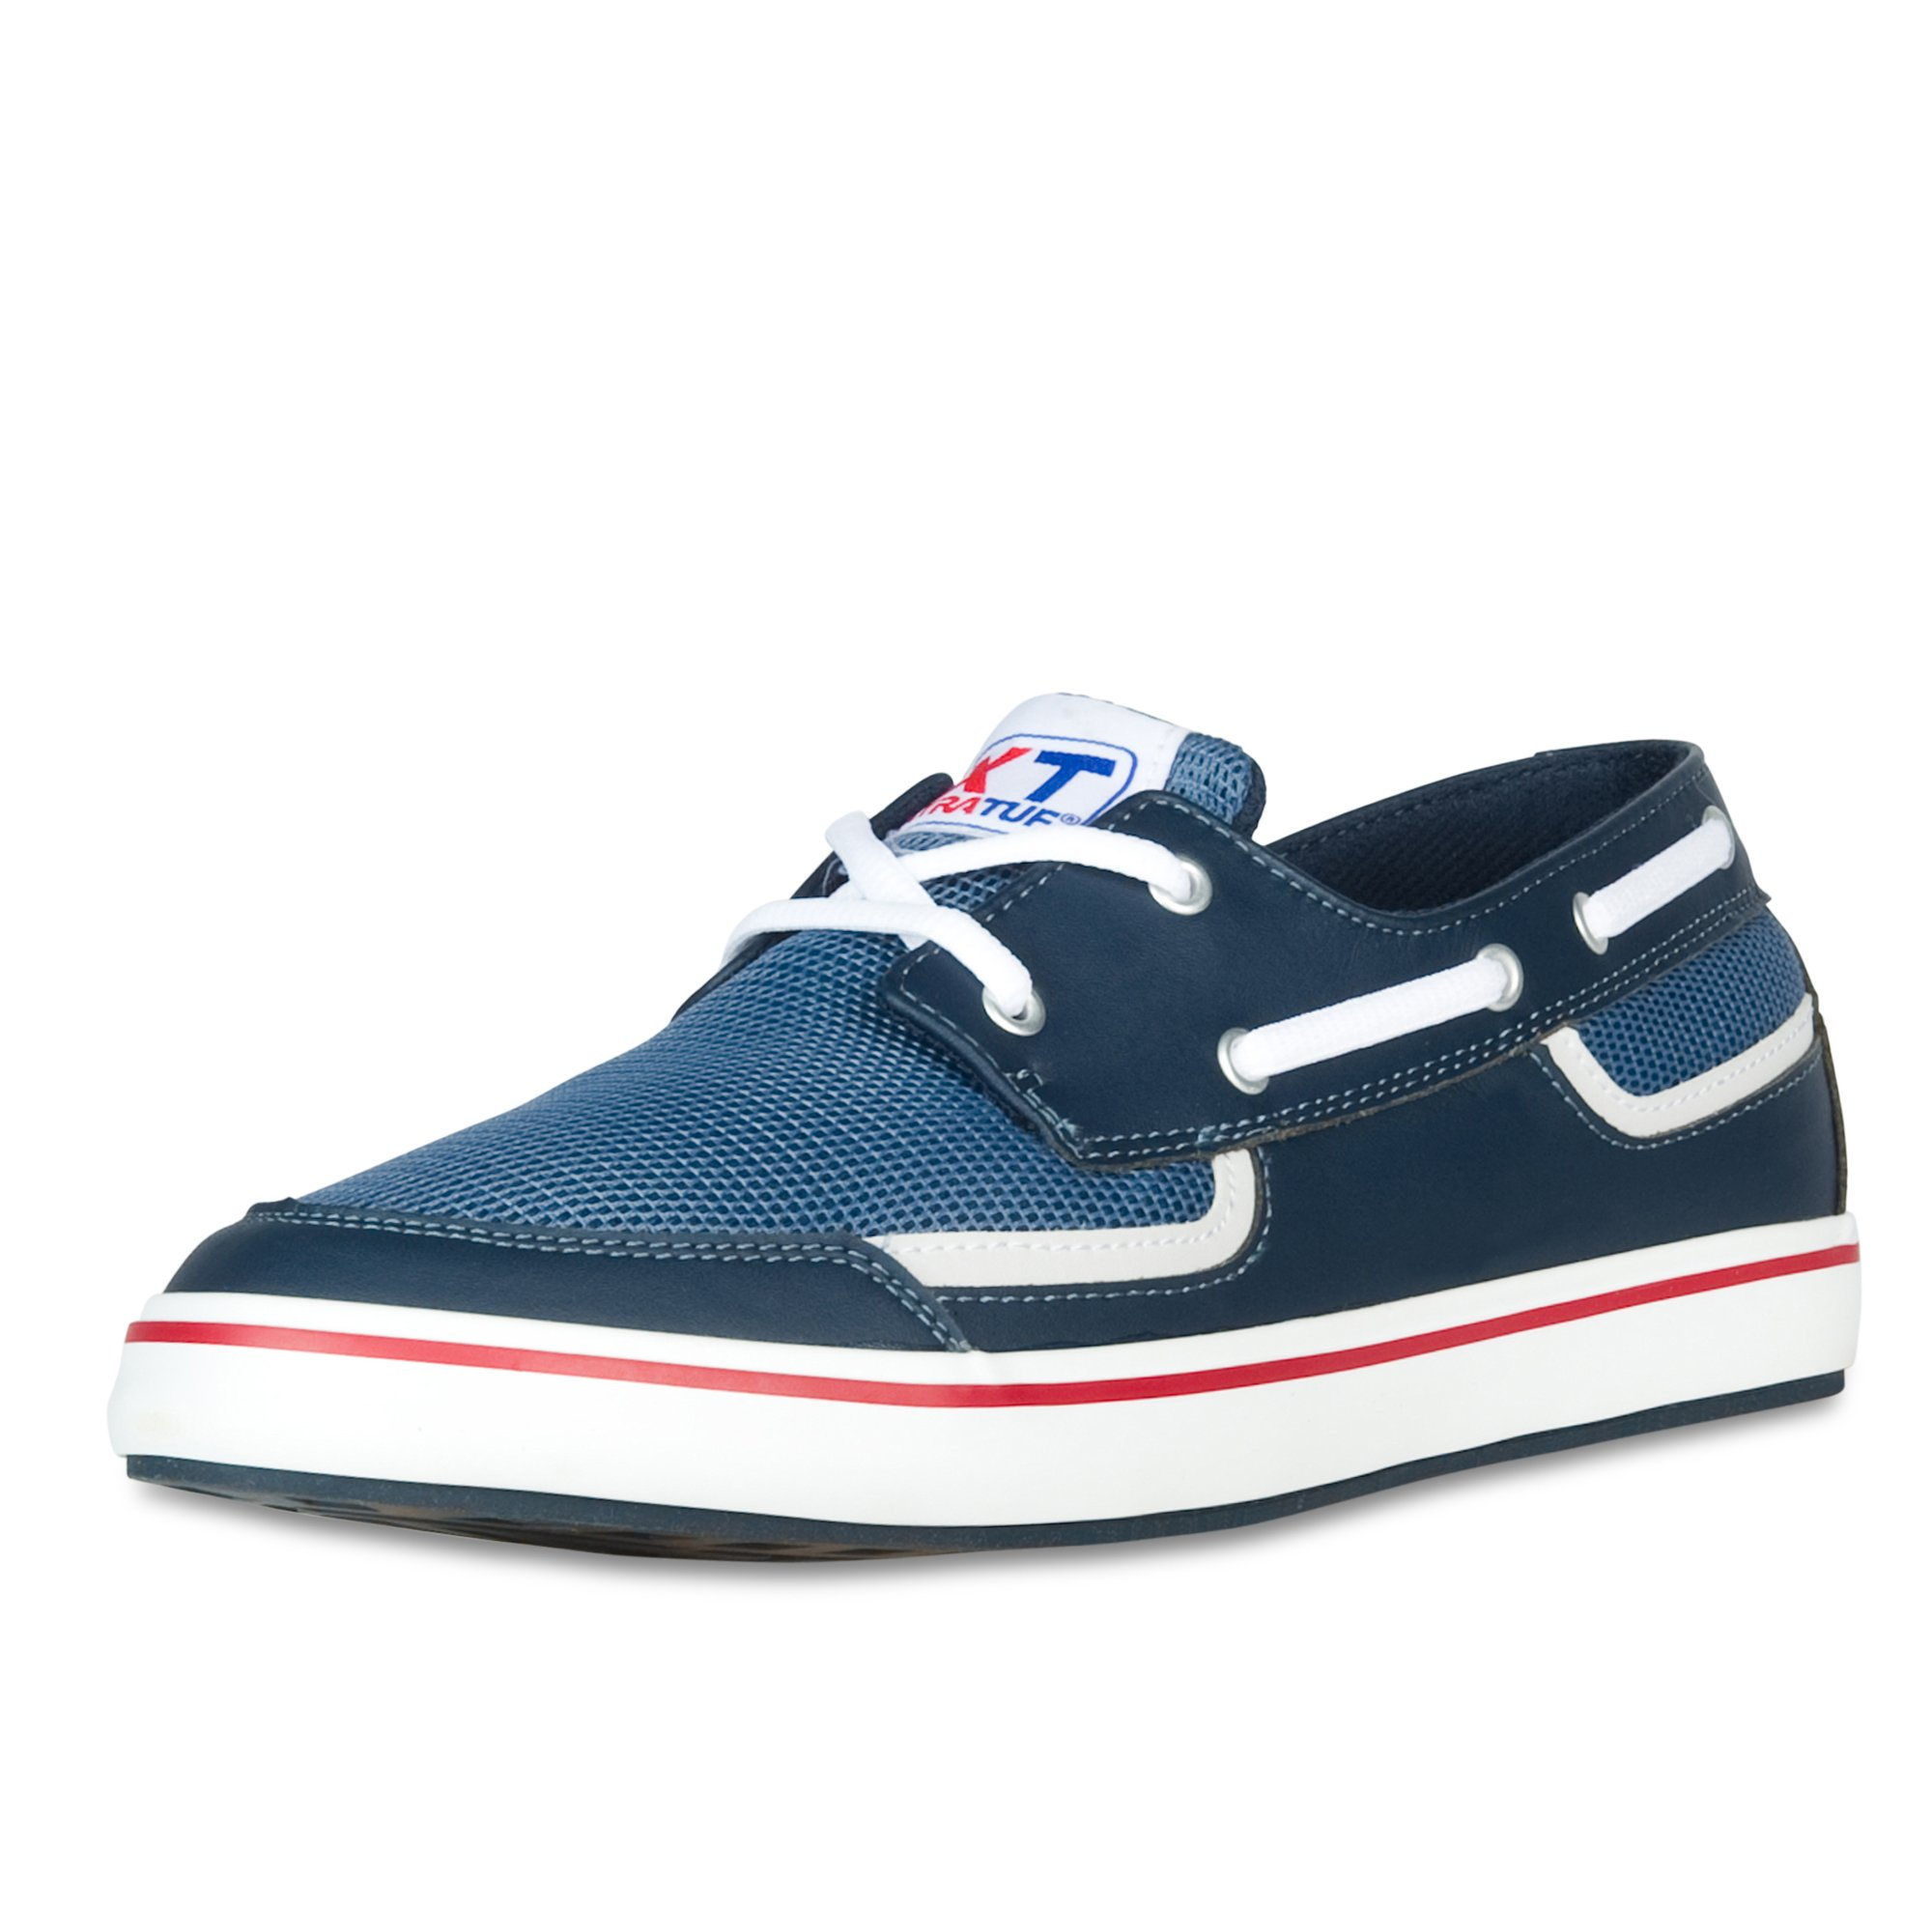 XTRATUF Bluefin Men's Microfiber Leather Deck Shoes, Navy (22605)